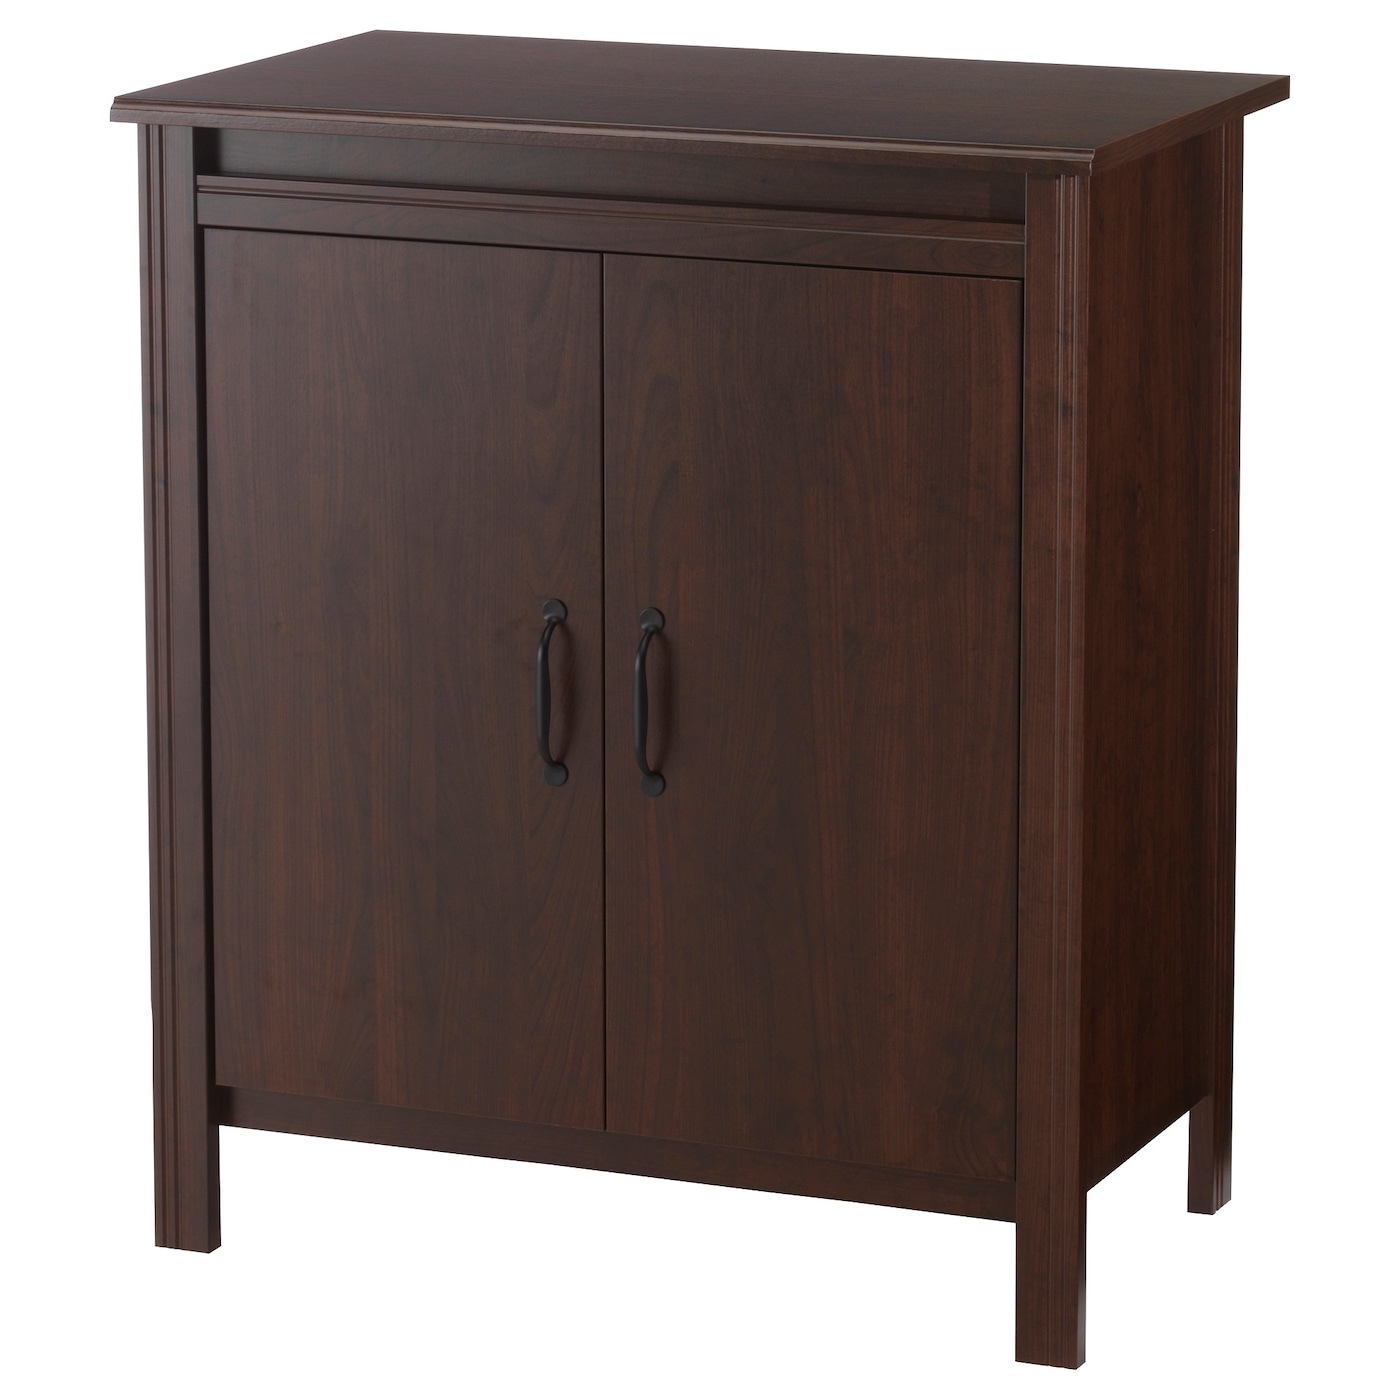 brusali cabinet with doors brown 80x93 cm ikea. Black Bedroom Furniture Sets. Home Design Ideas